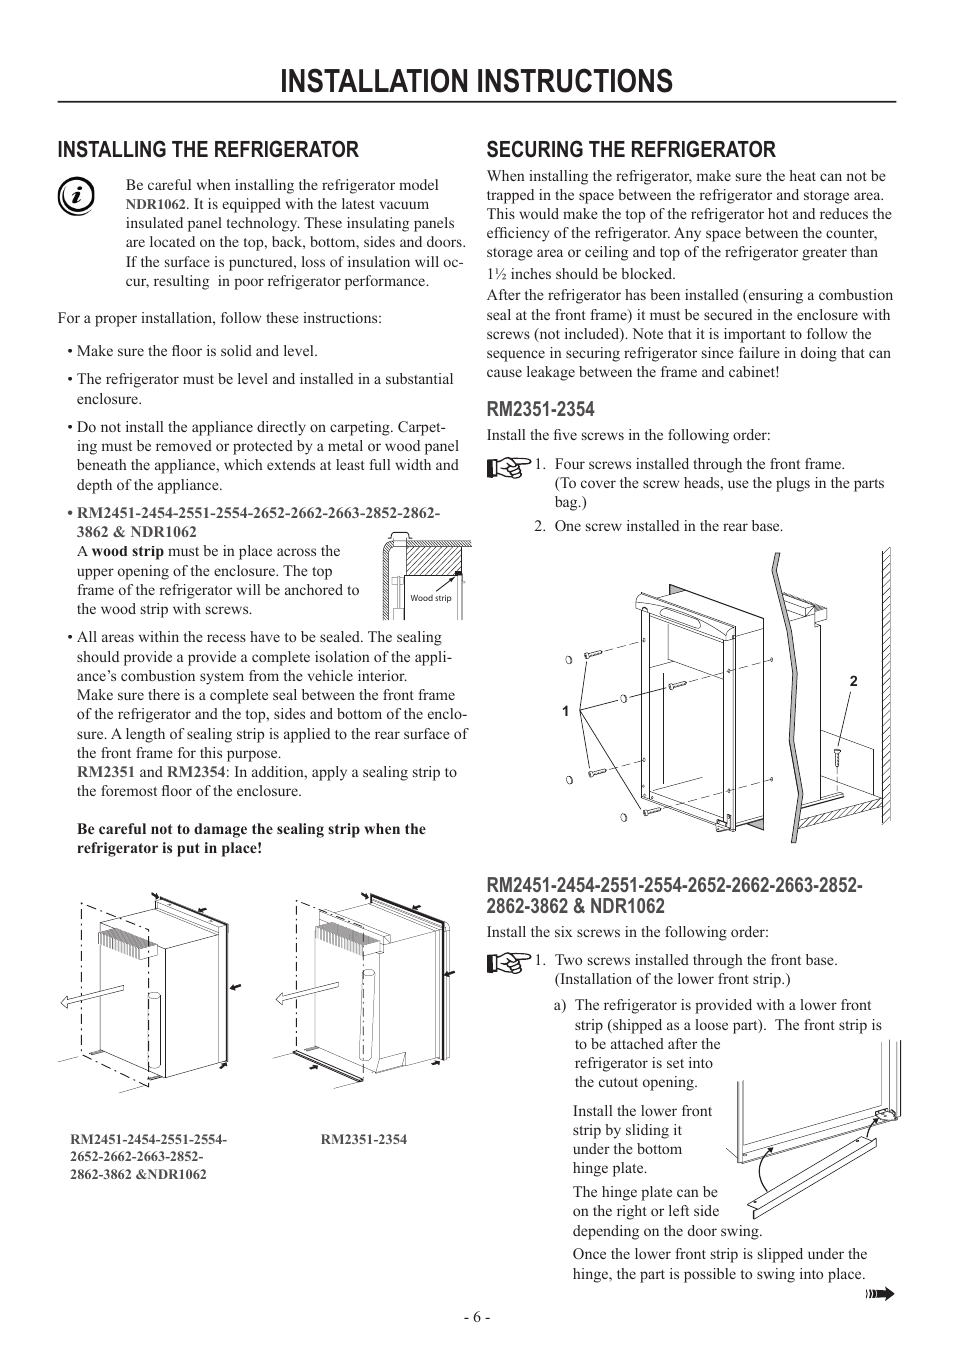 Thermador Refrigerator Installation Instructions Manual Guide